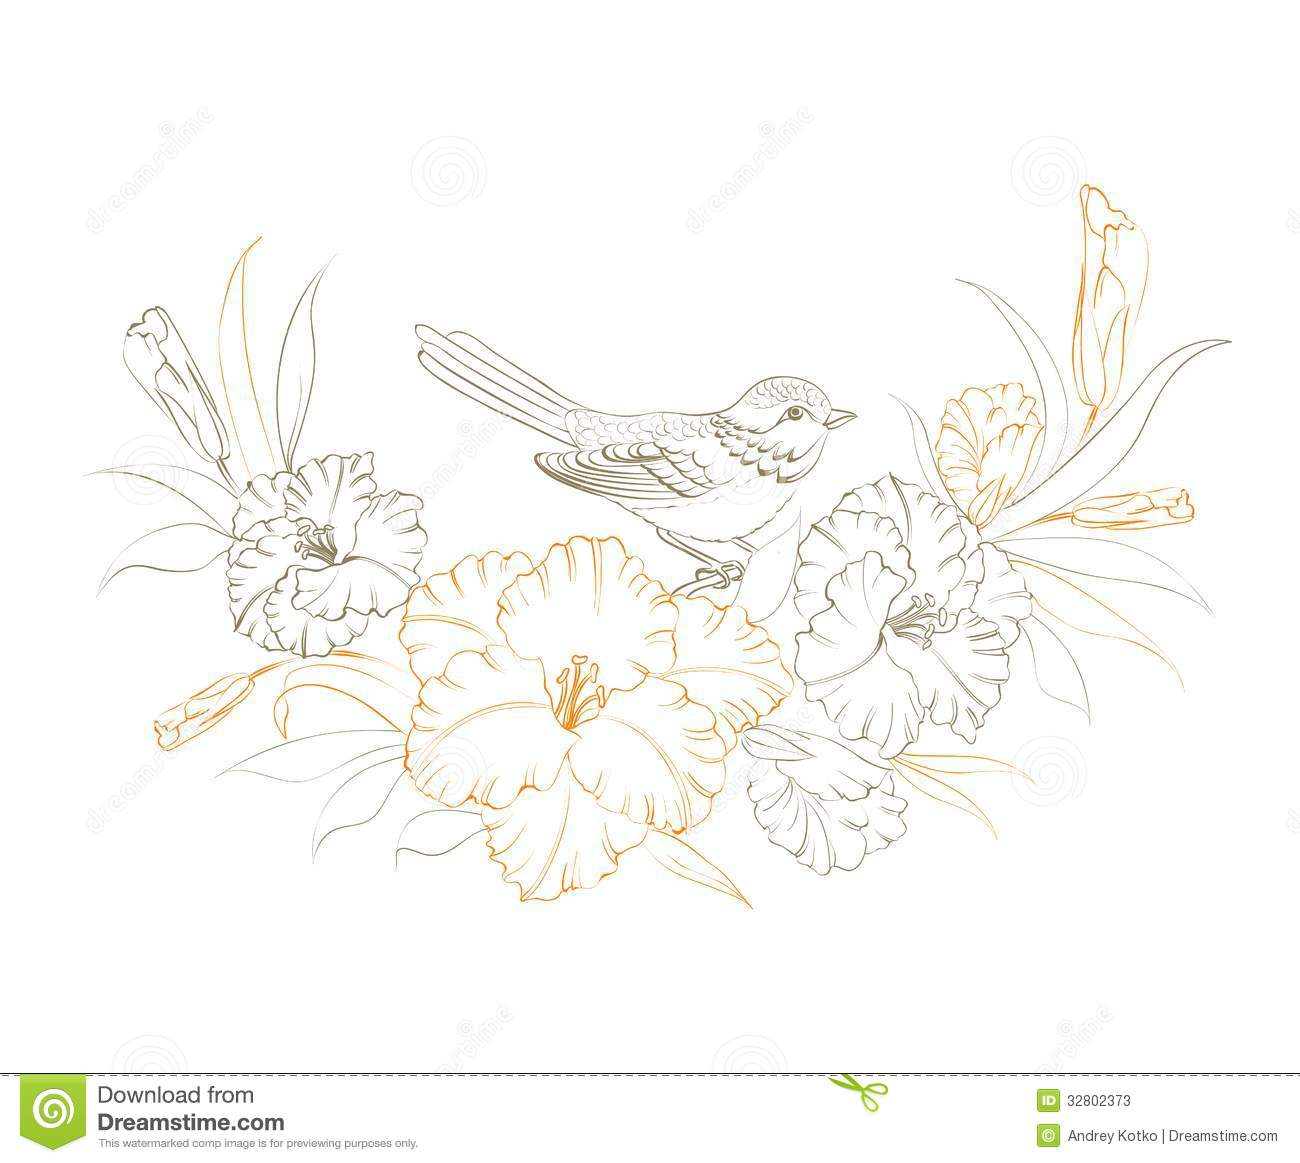 Bird sitting on iris flower vector illustration